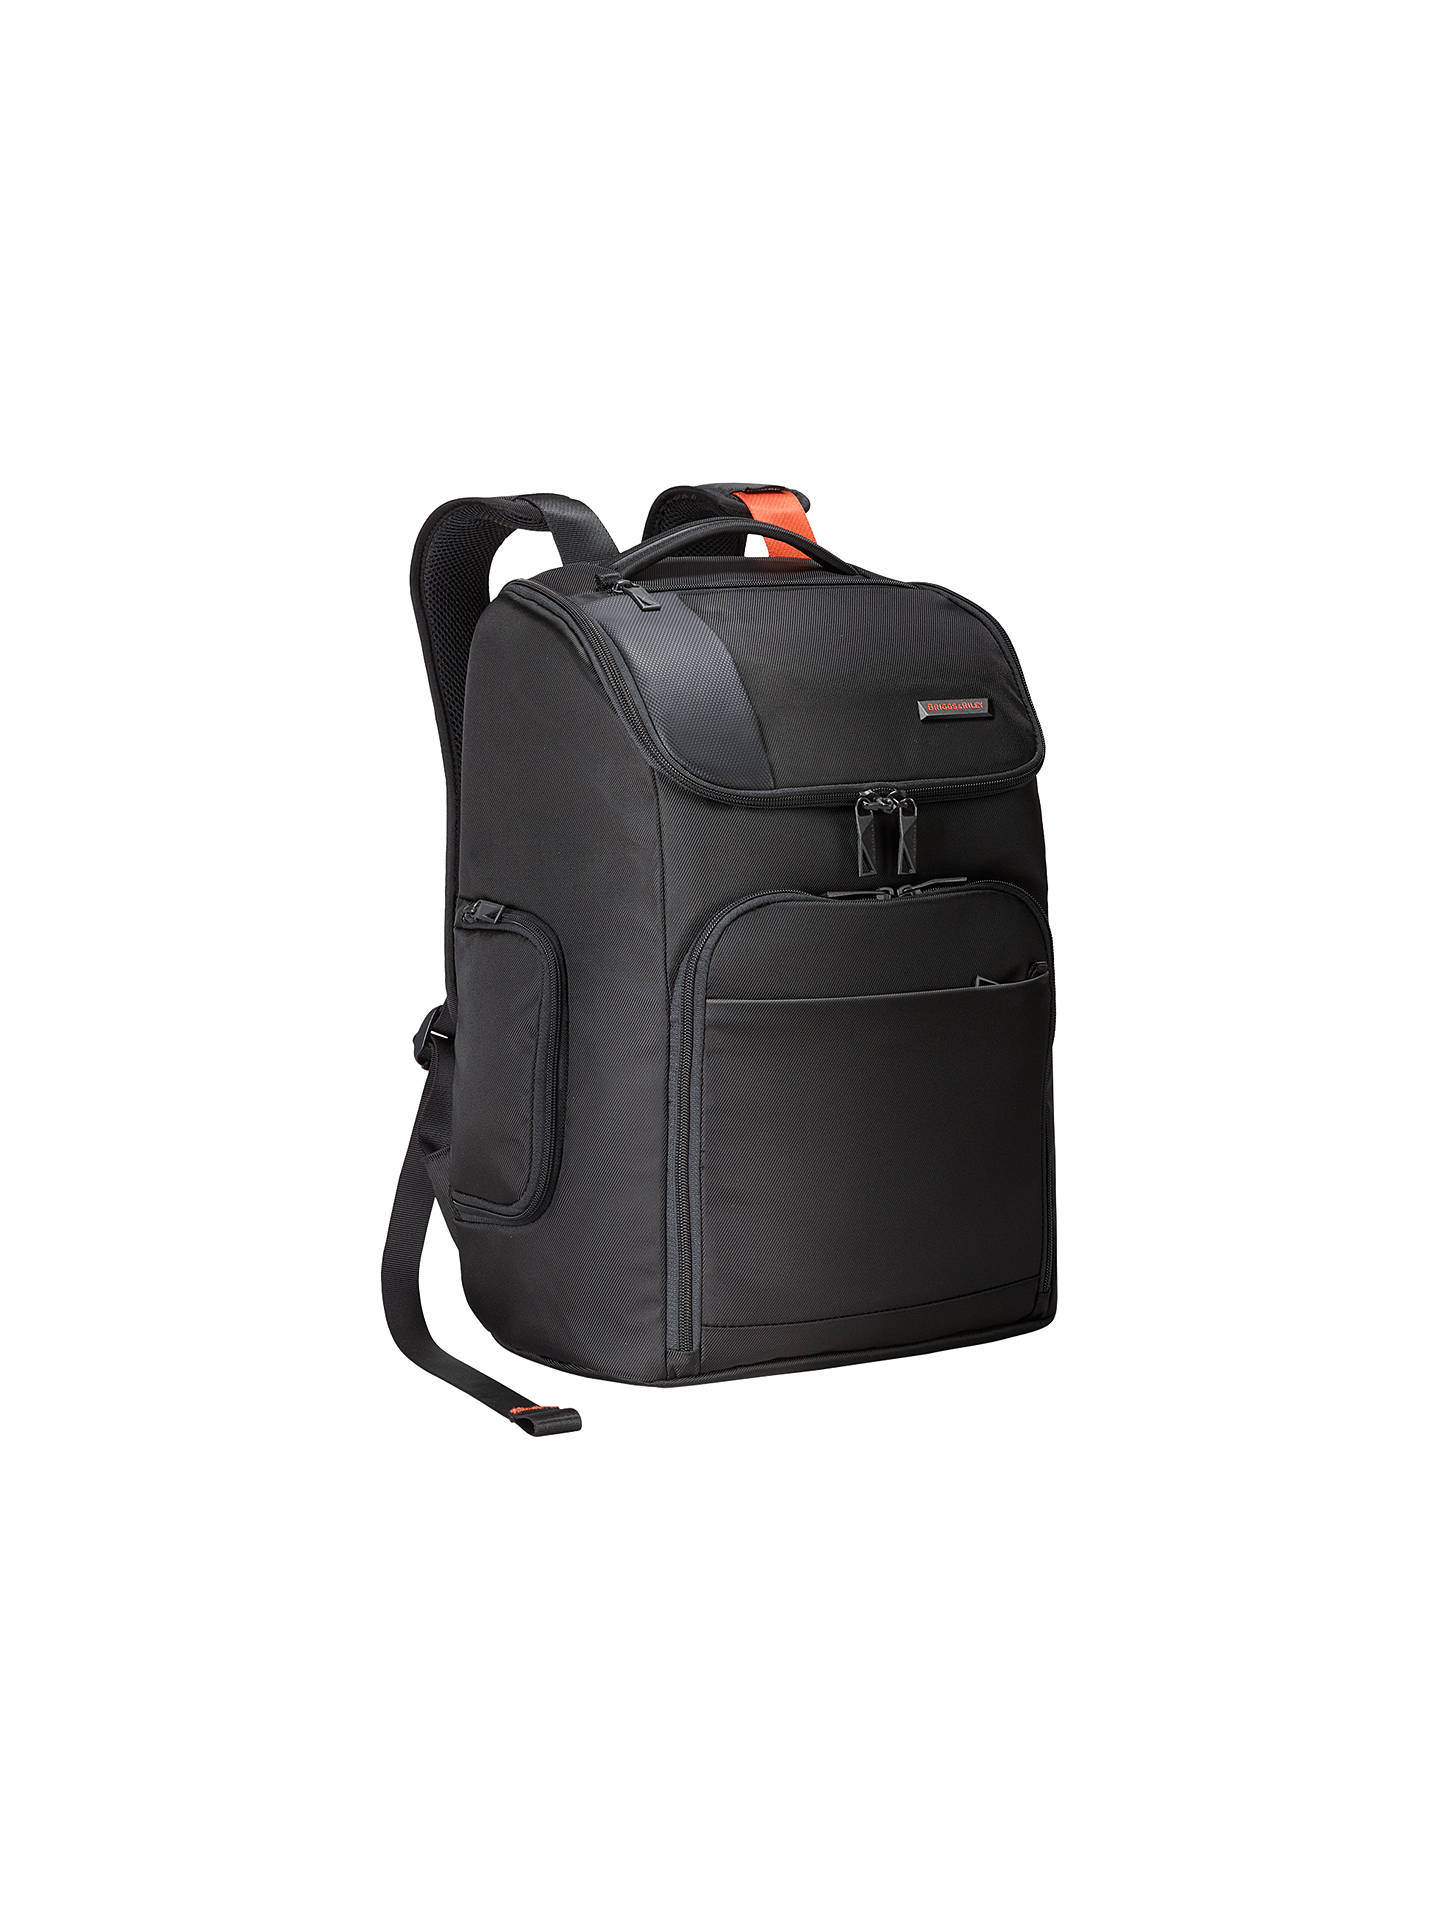 BuyBriggs   Riley Verb Advance Backpack 1856e6e1c7c6d